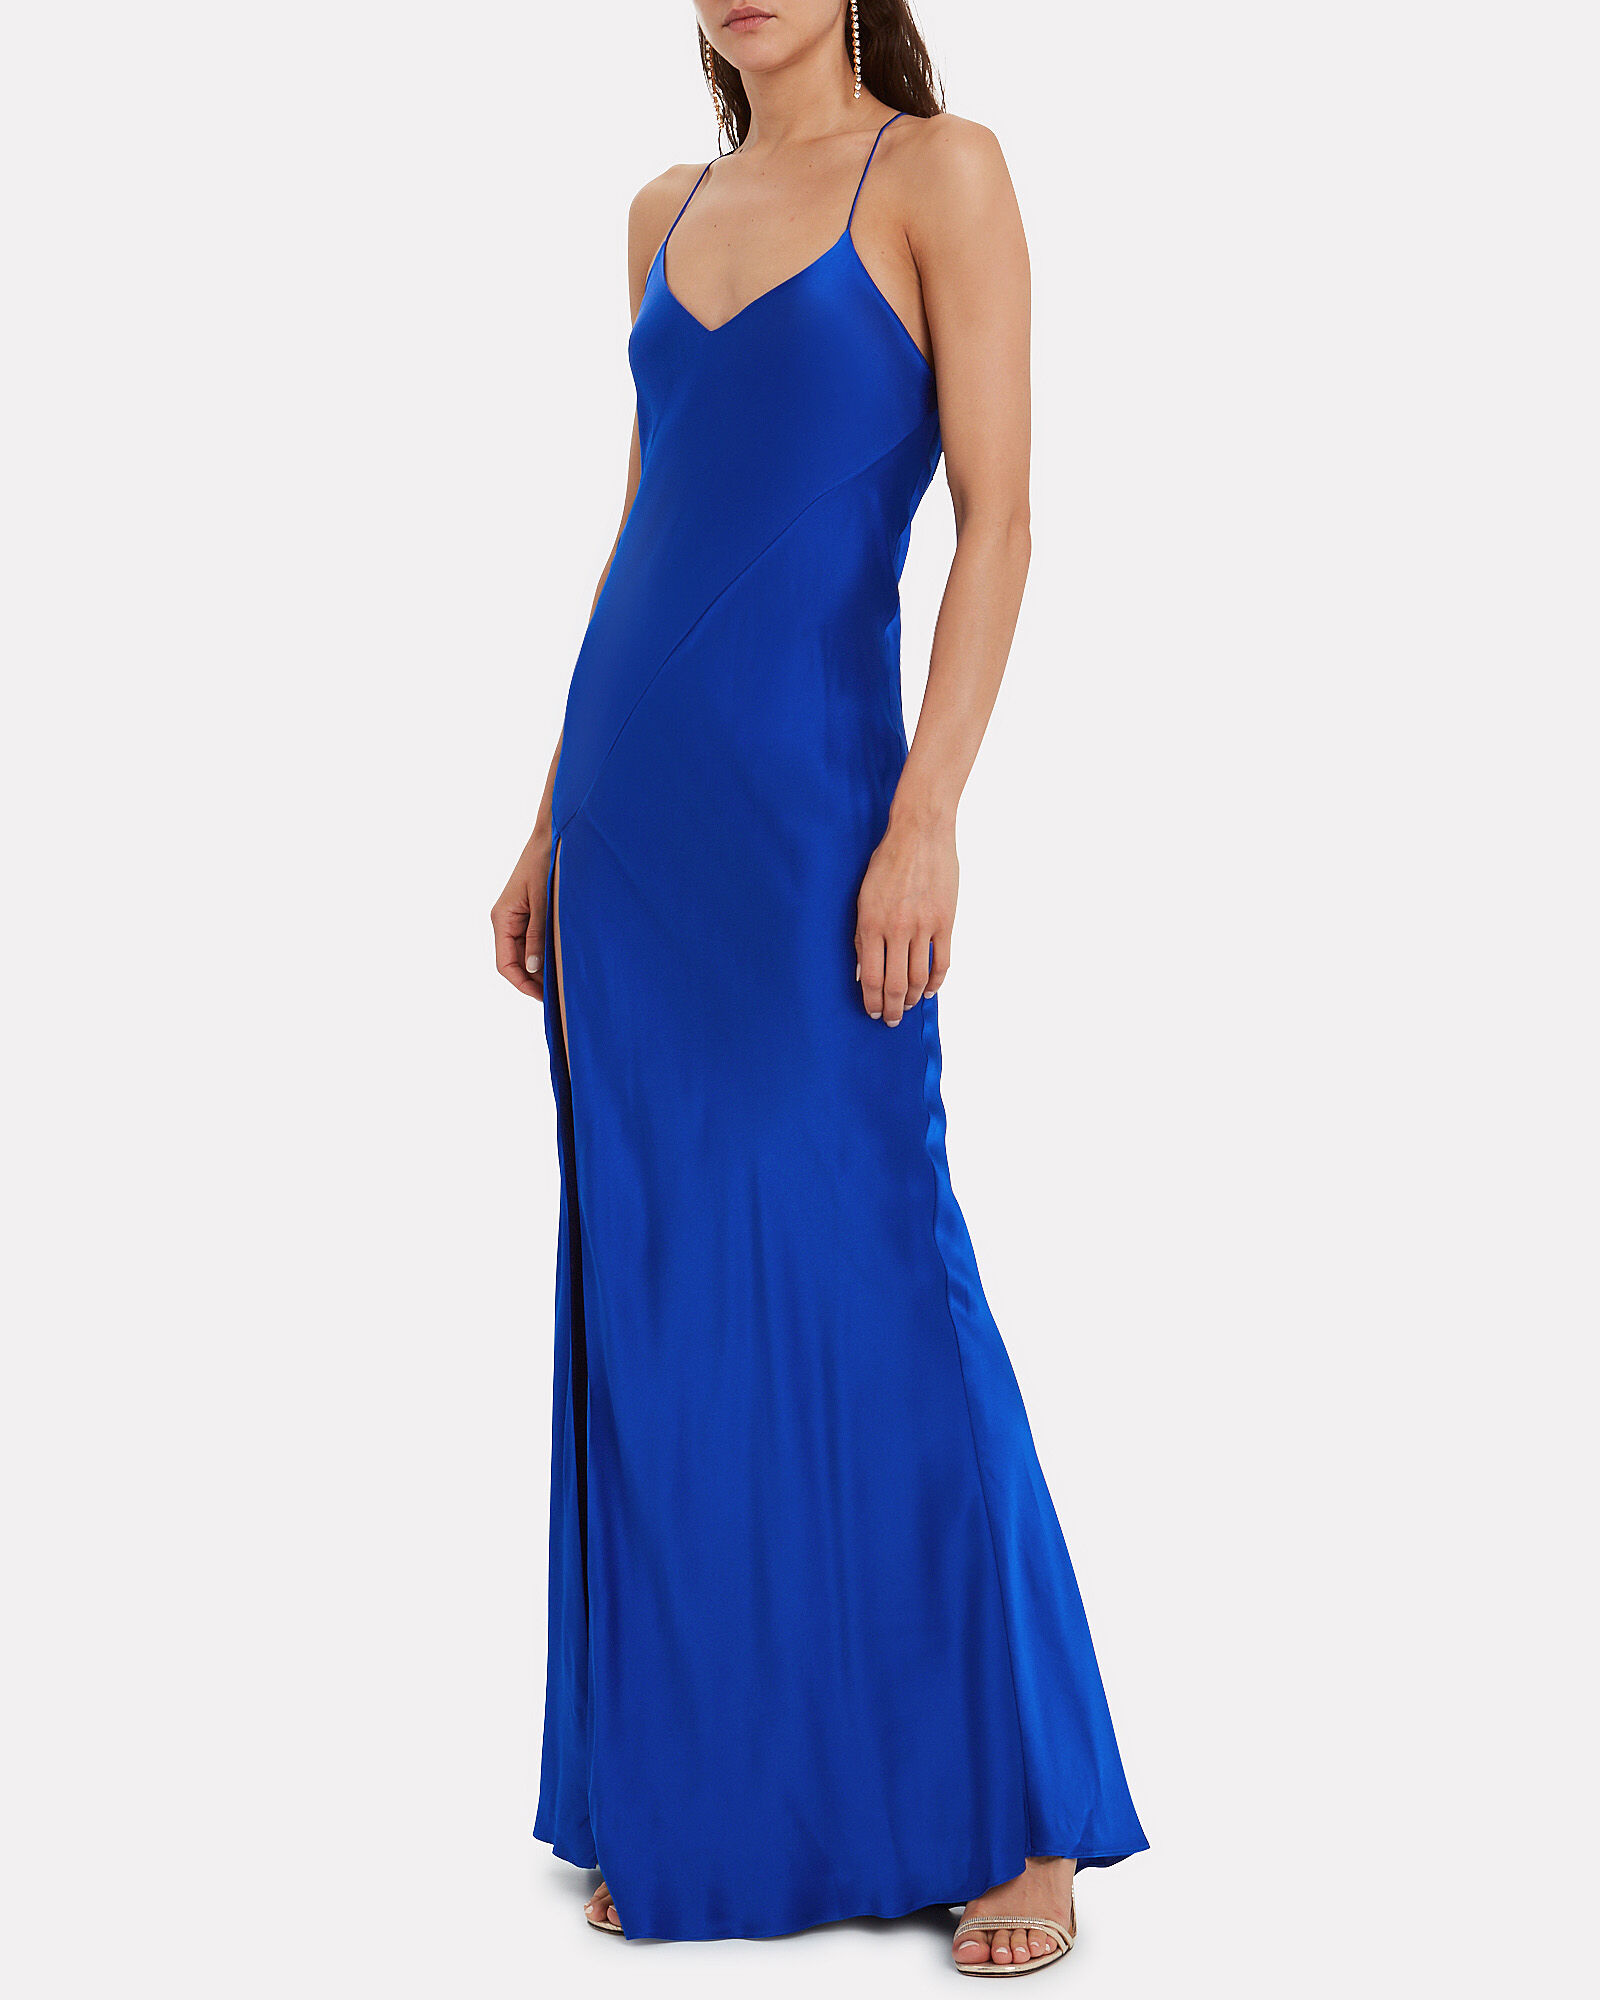 Bias Cut Silk Charmeuse Gown, COBALT BLUE, hi-res